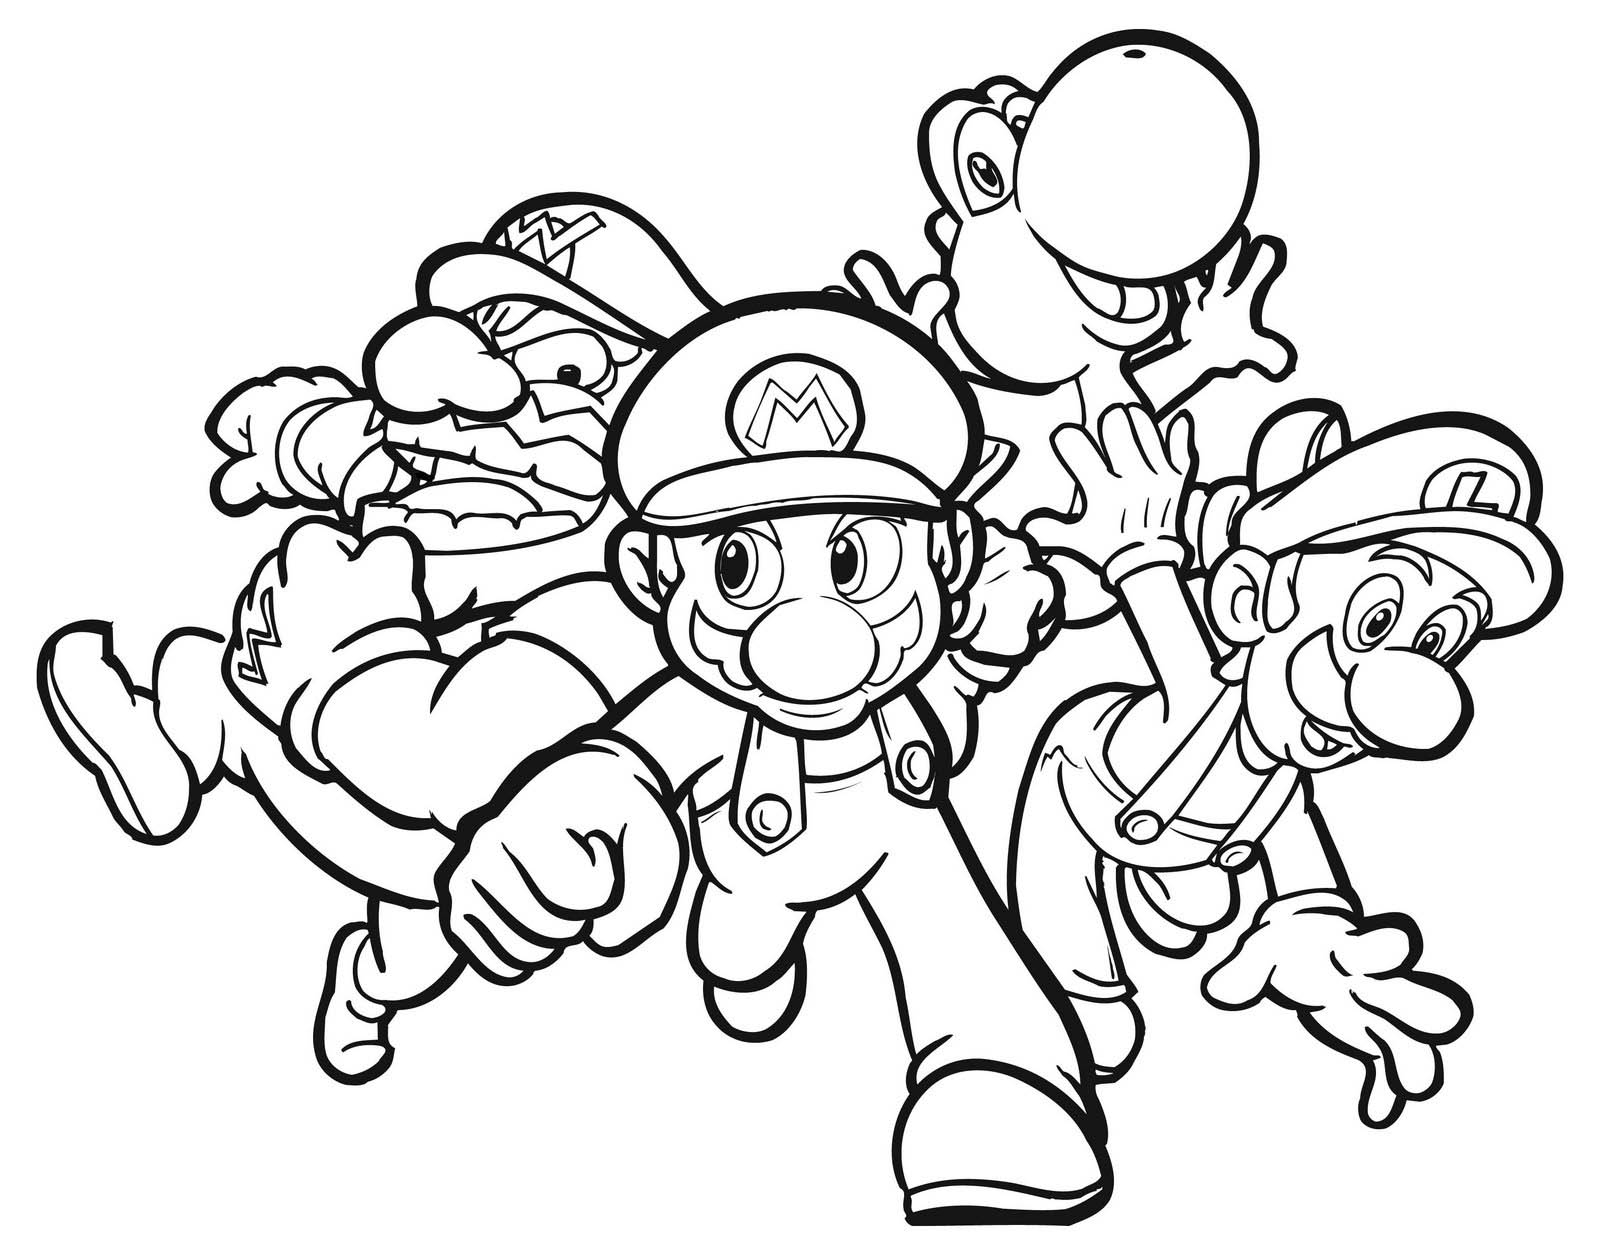 Printable Mario Coloring Pages - Free Printable Mario Coloring Pages for Kids